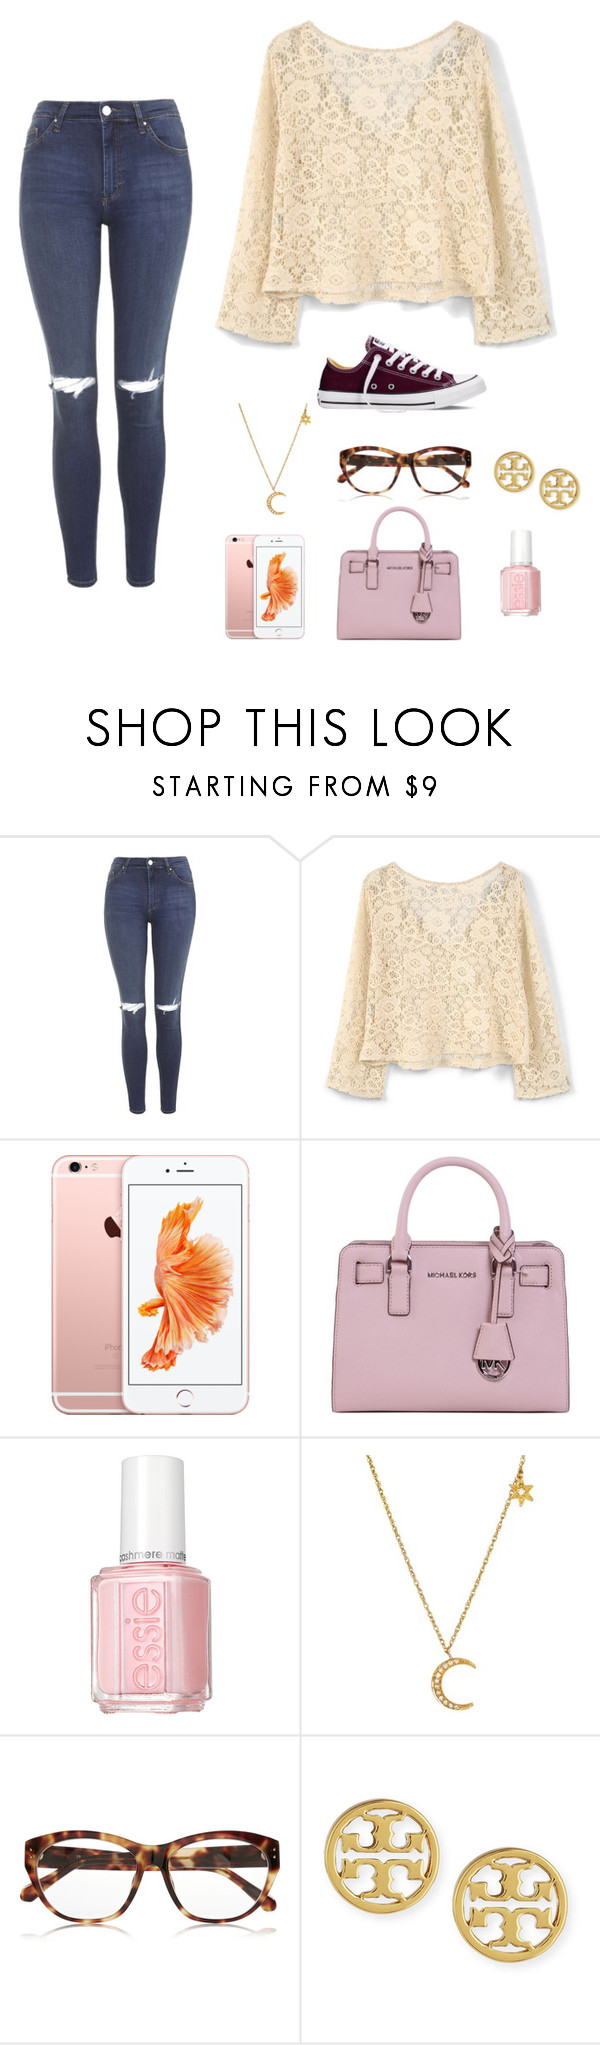 """""""you never say hey or remember my name??"""" by moonhauntedmyocean ❤ liked on Polyvore featuring Topshop, MANGO, MICHAEL Michael Kors, Essie, Linda Farrow, Tory Burch, Converse, women's clothing, women and female"""